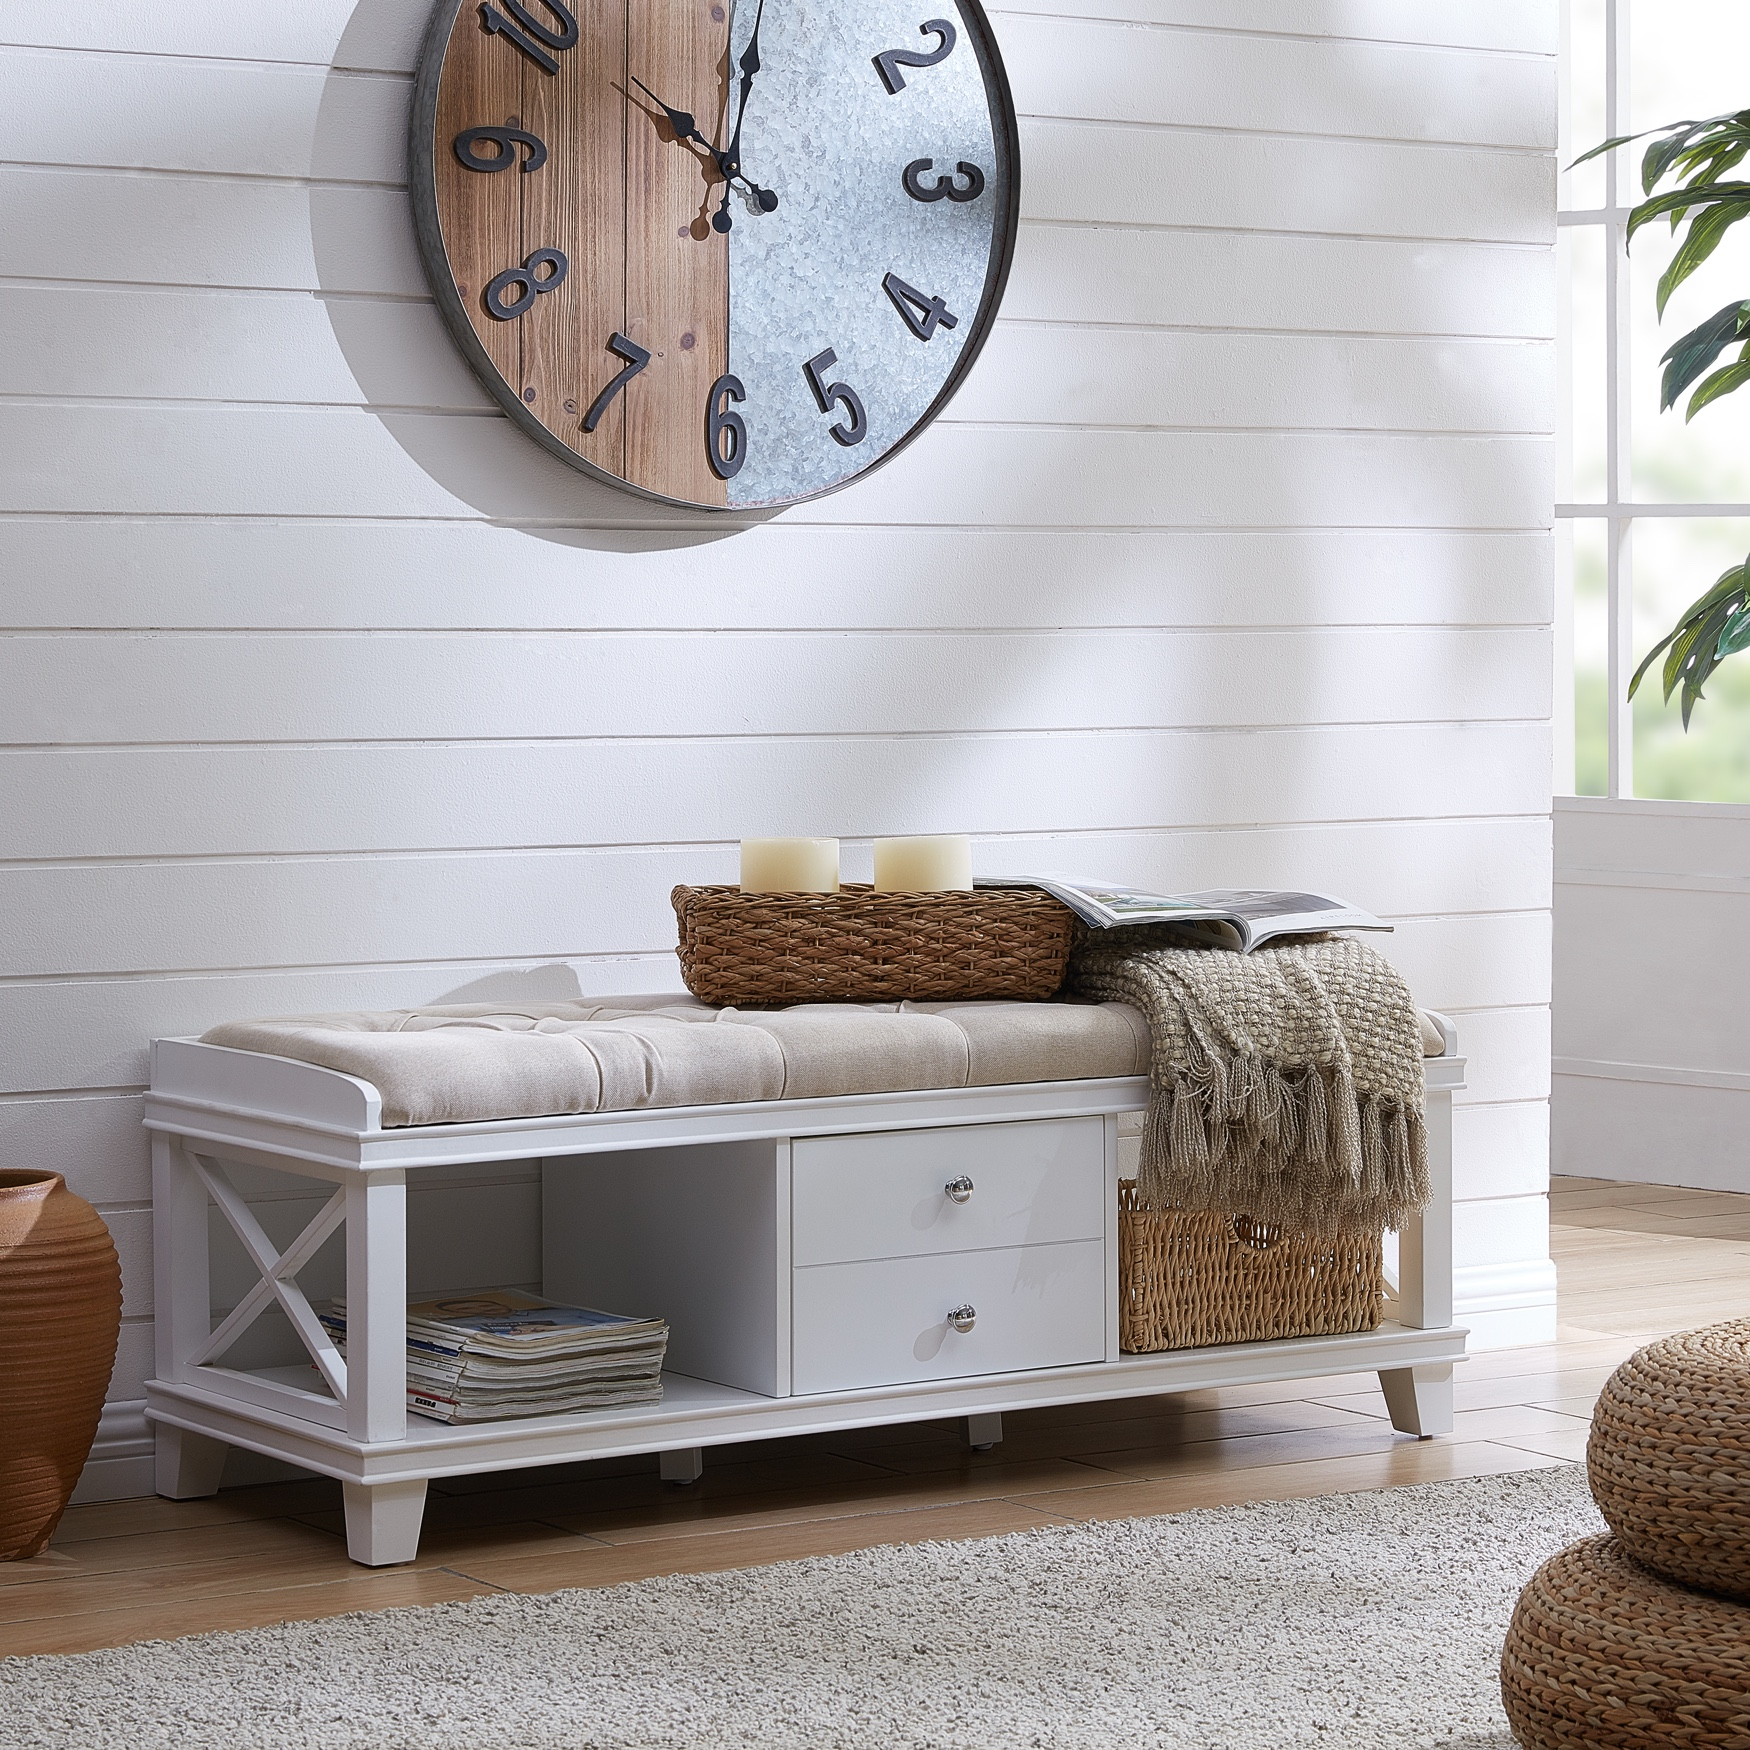 Wyndcliff White Upholstered Storage Bench, WHITE